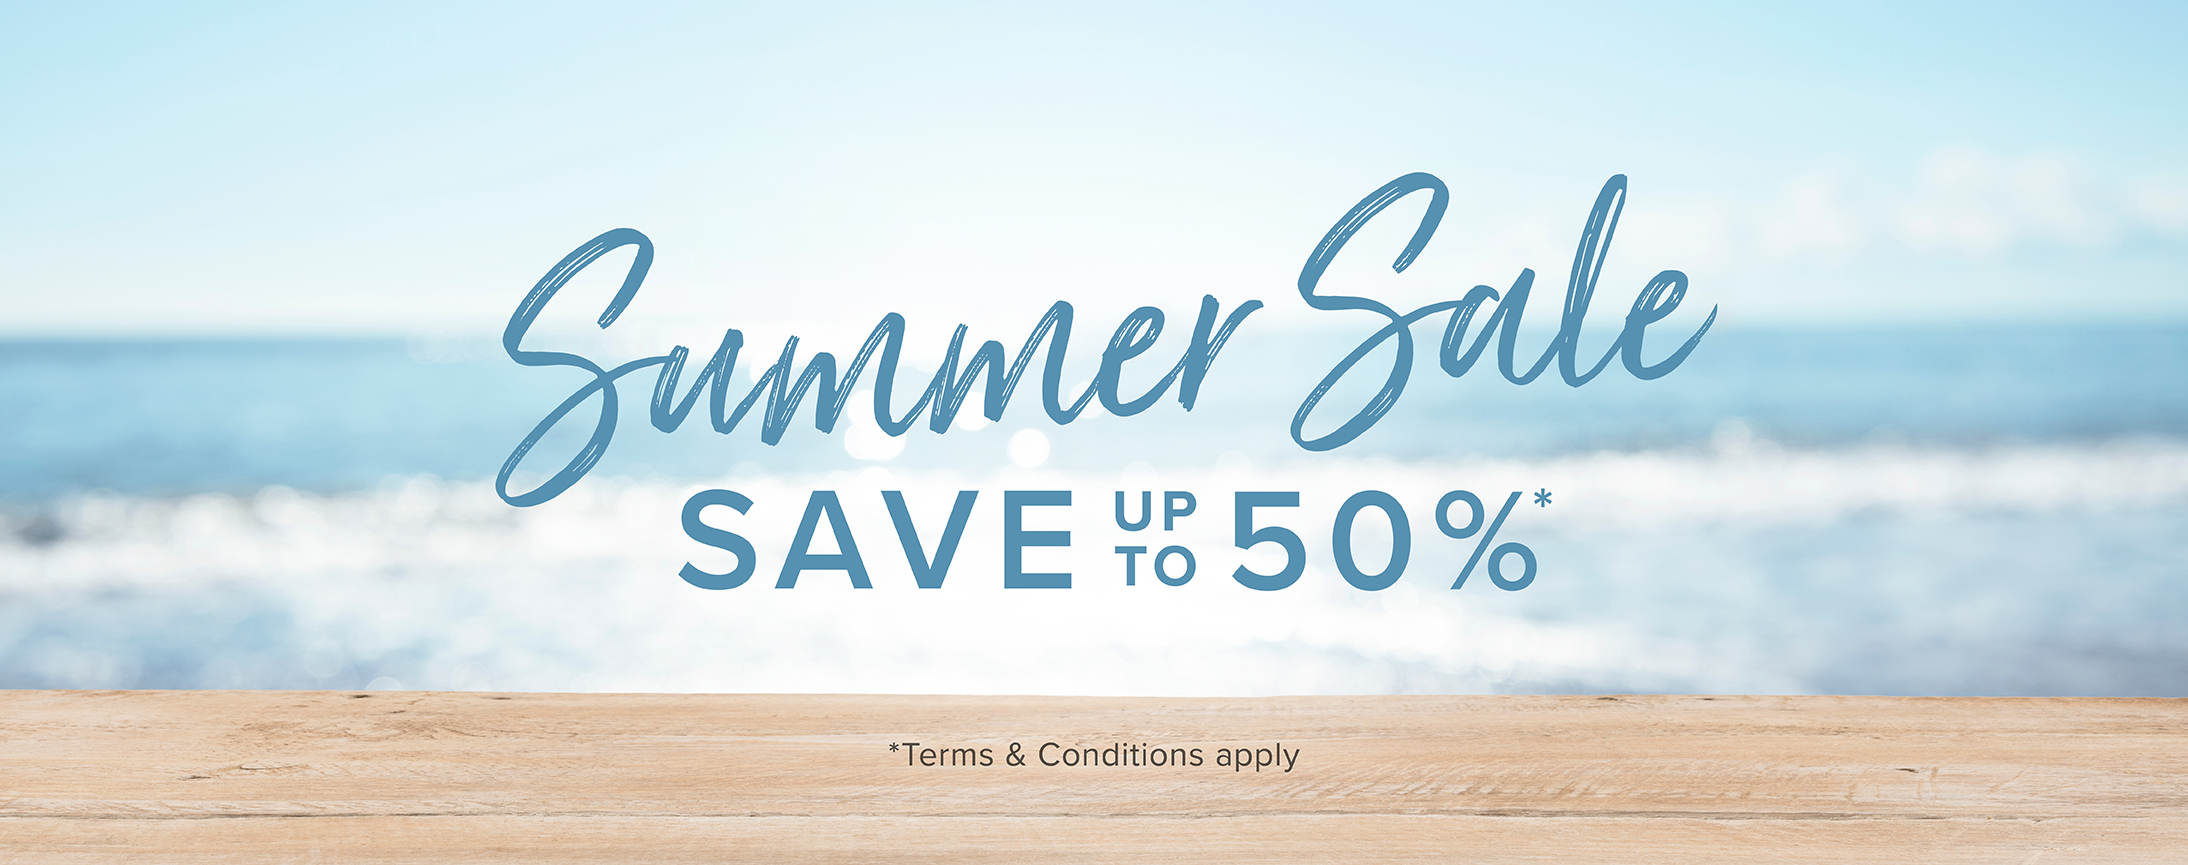 2019_12_SummerSale_Web_hero_2188x865_v2